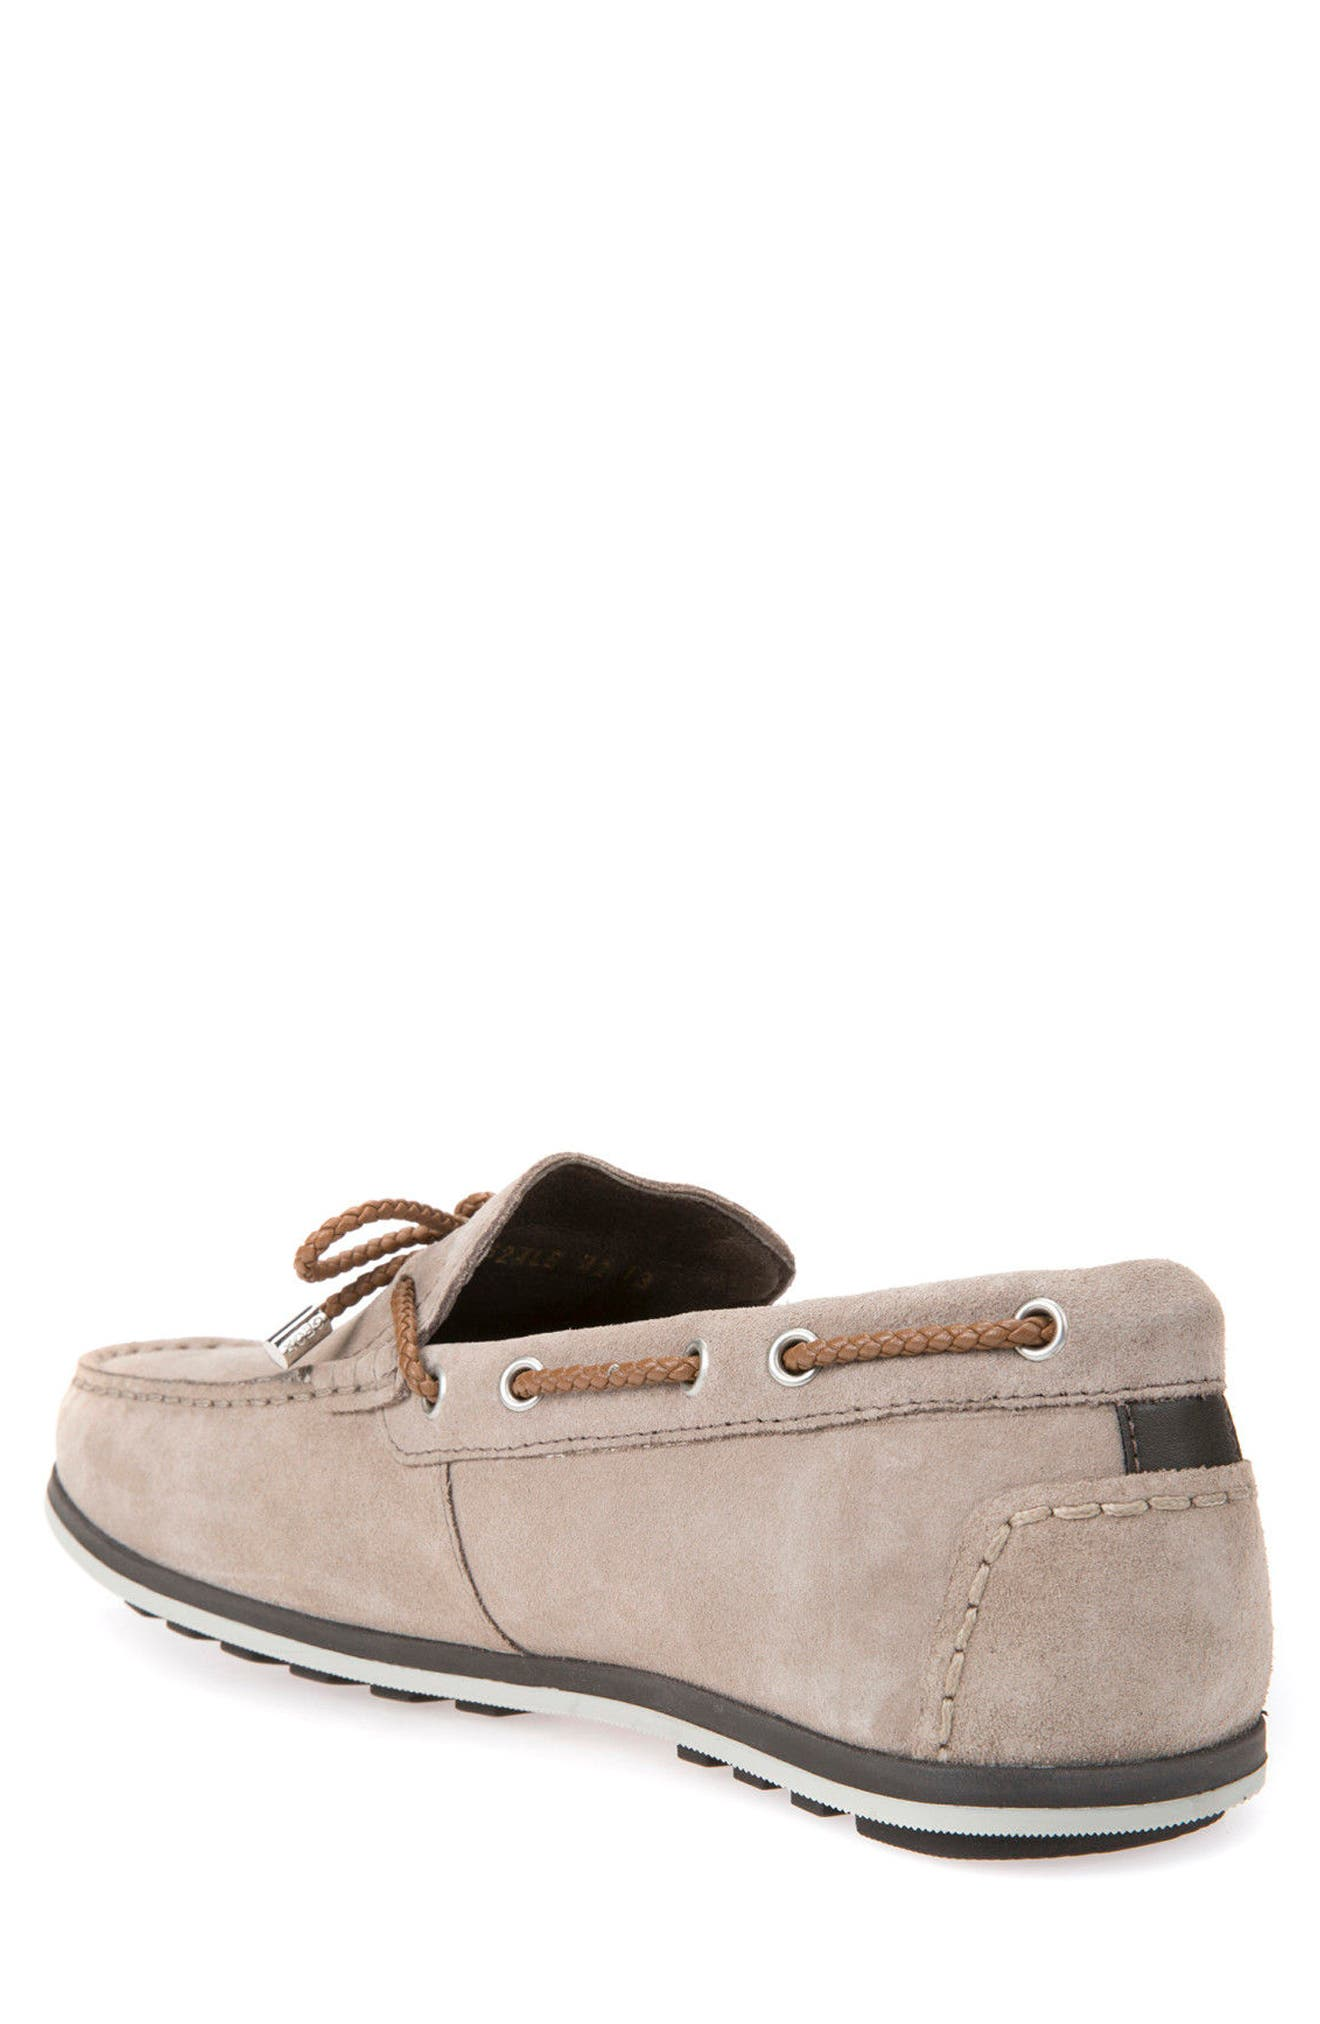 Mirvin 2 Boat Shoe,                             Alternate thumbnail 2, color,                             Taupe Suede